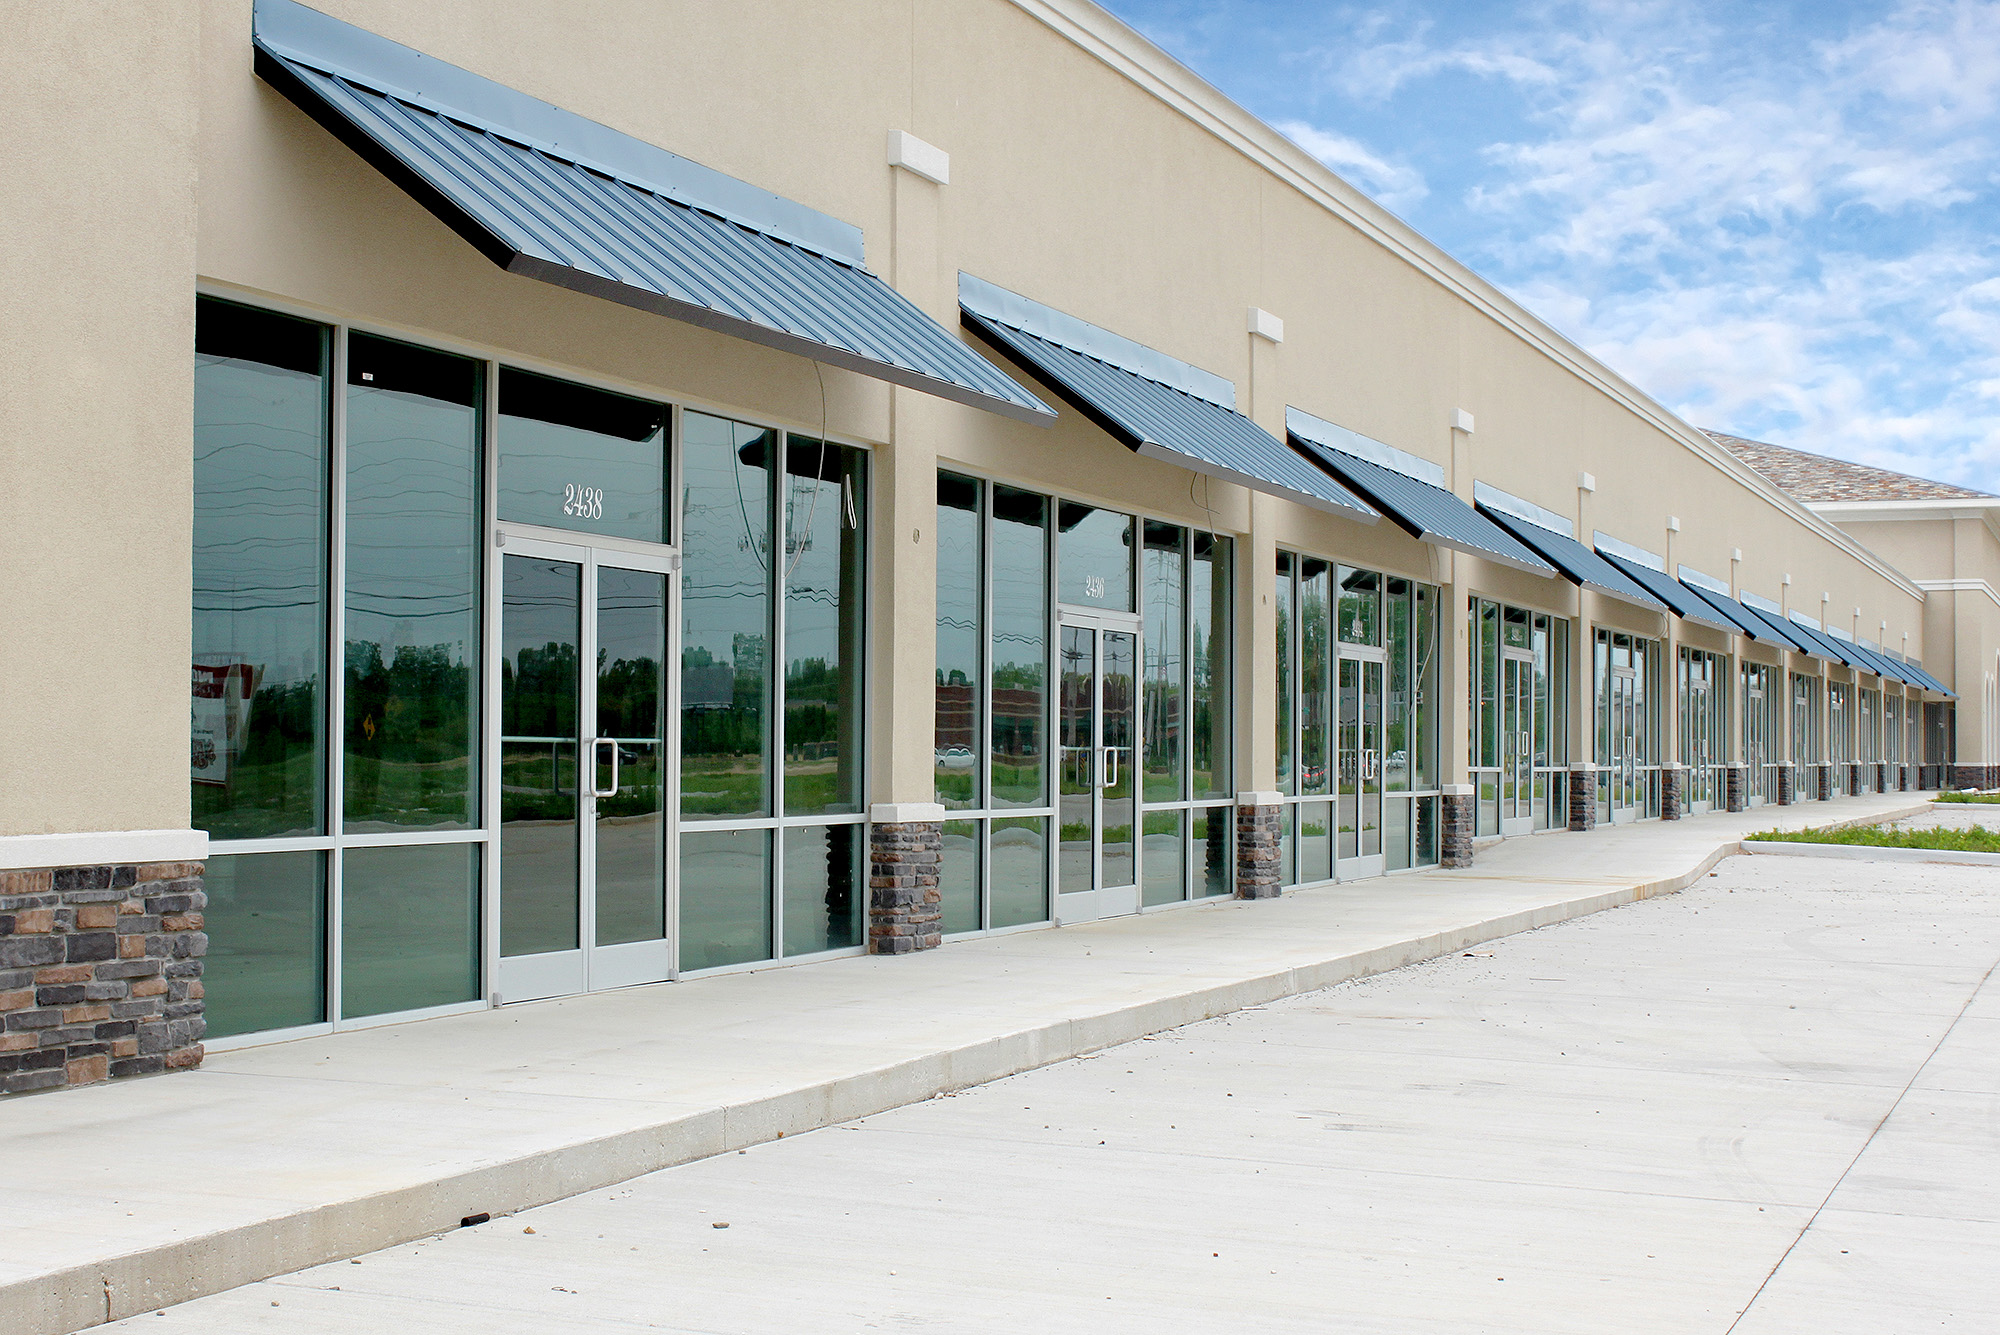 Metal Awnings for office buildings